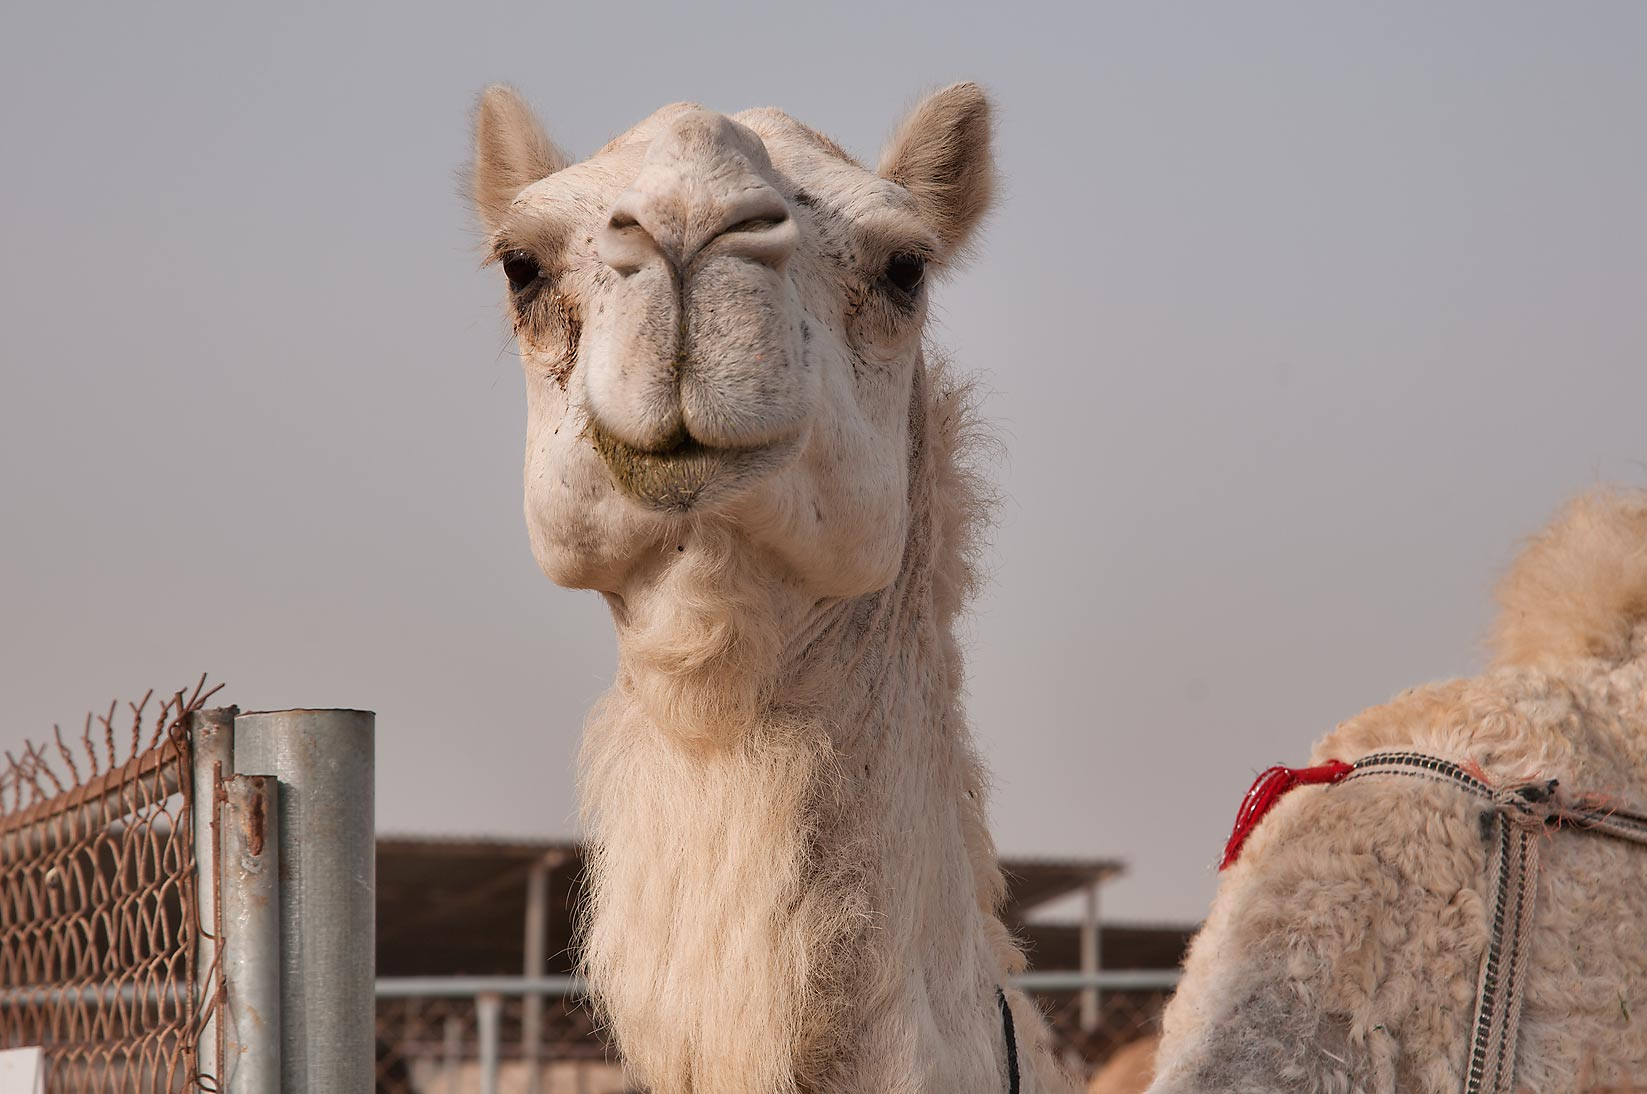 White camel in Wholesale Animal Market. Doha, Qatar